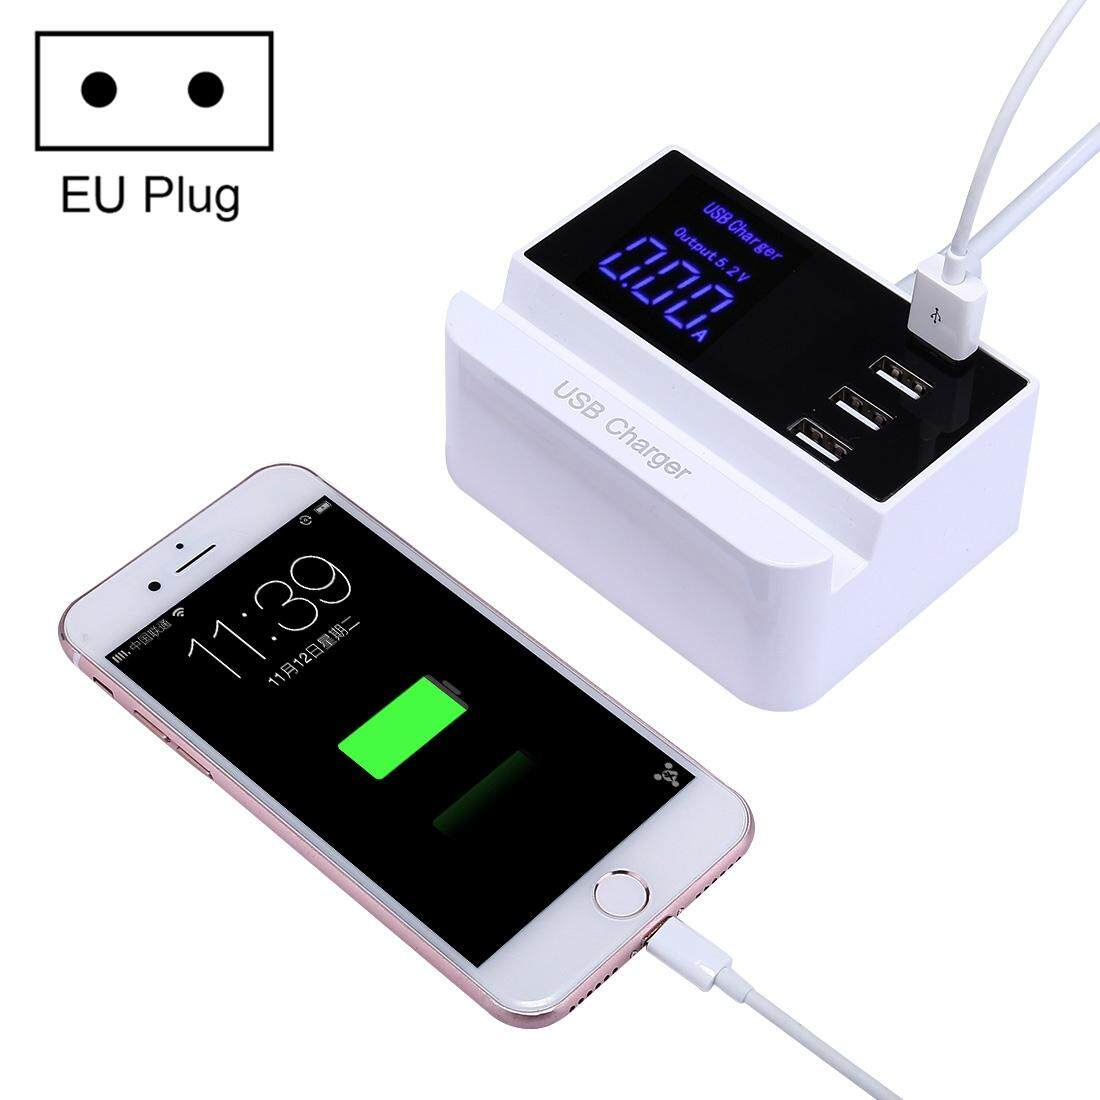 Fast Charger Quick Charger Charger Converter Charger Adapter Mobile Accessories Cable & Charger & Adaptor USB